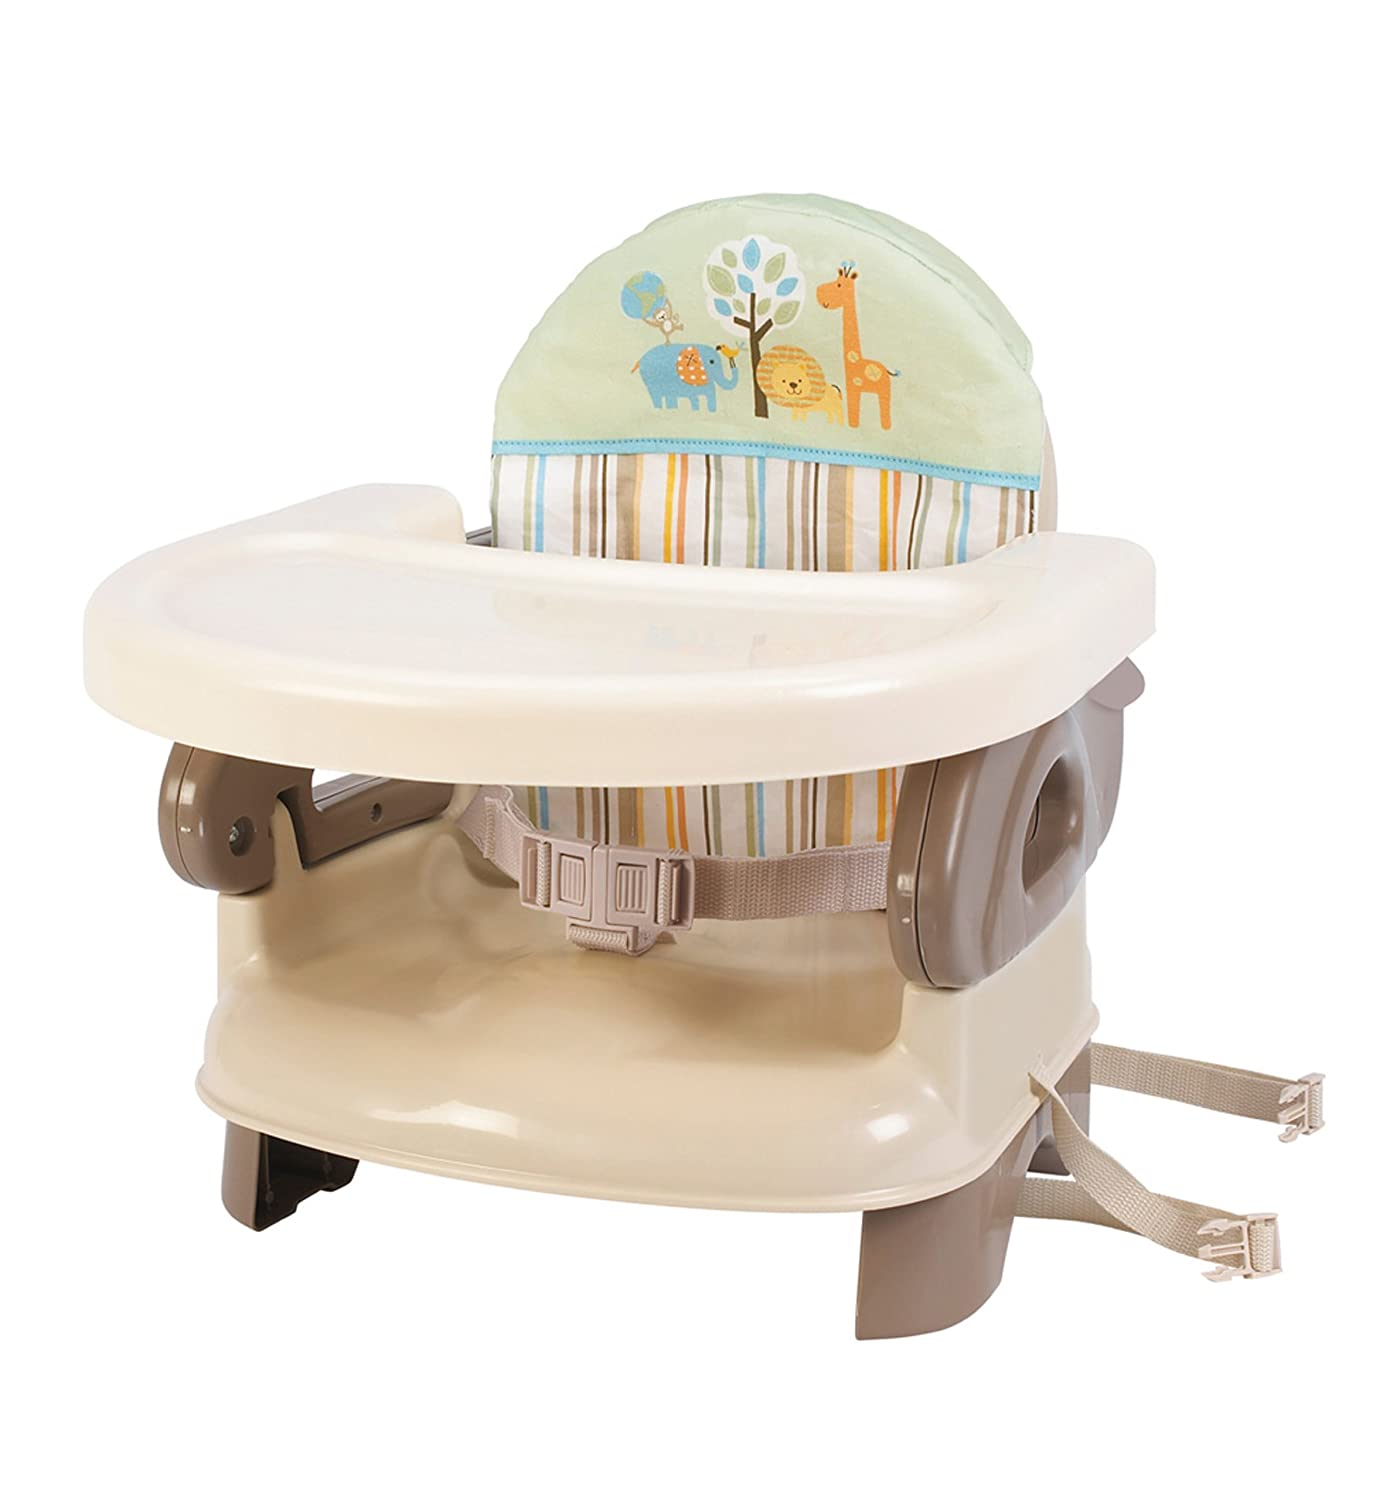 Summer Infant Deluxe fort Booster Baby Seat Toddler